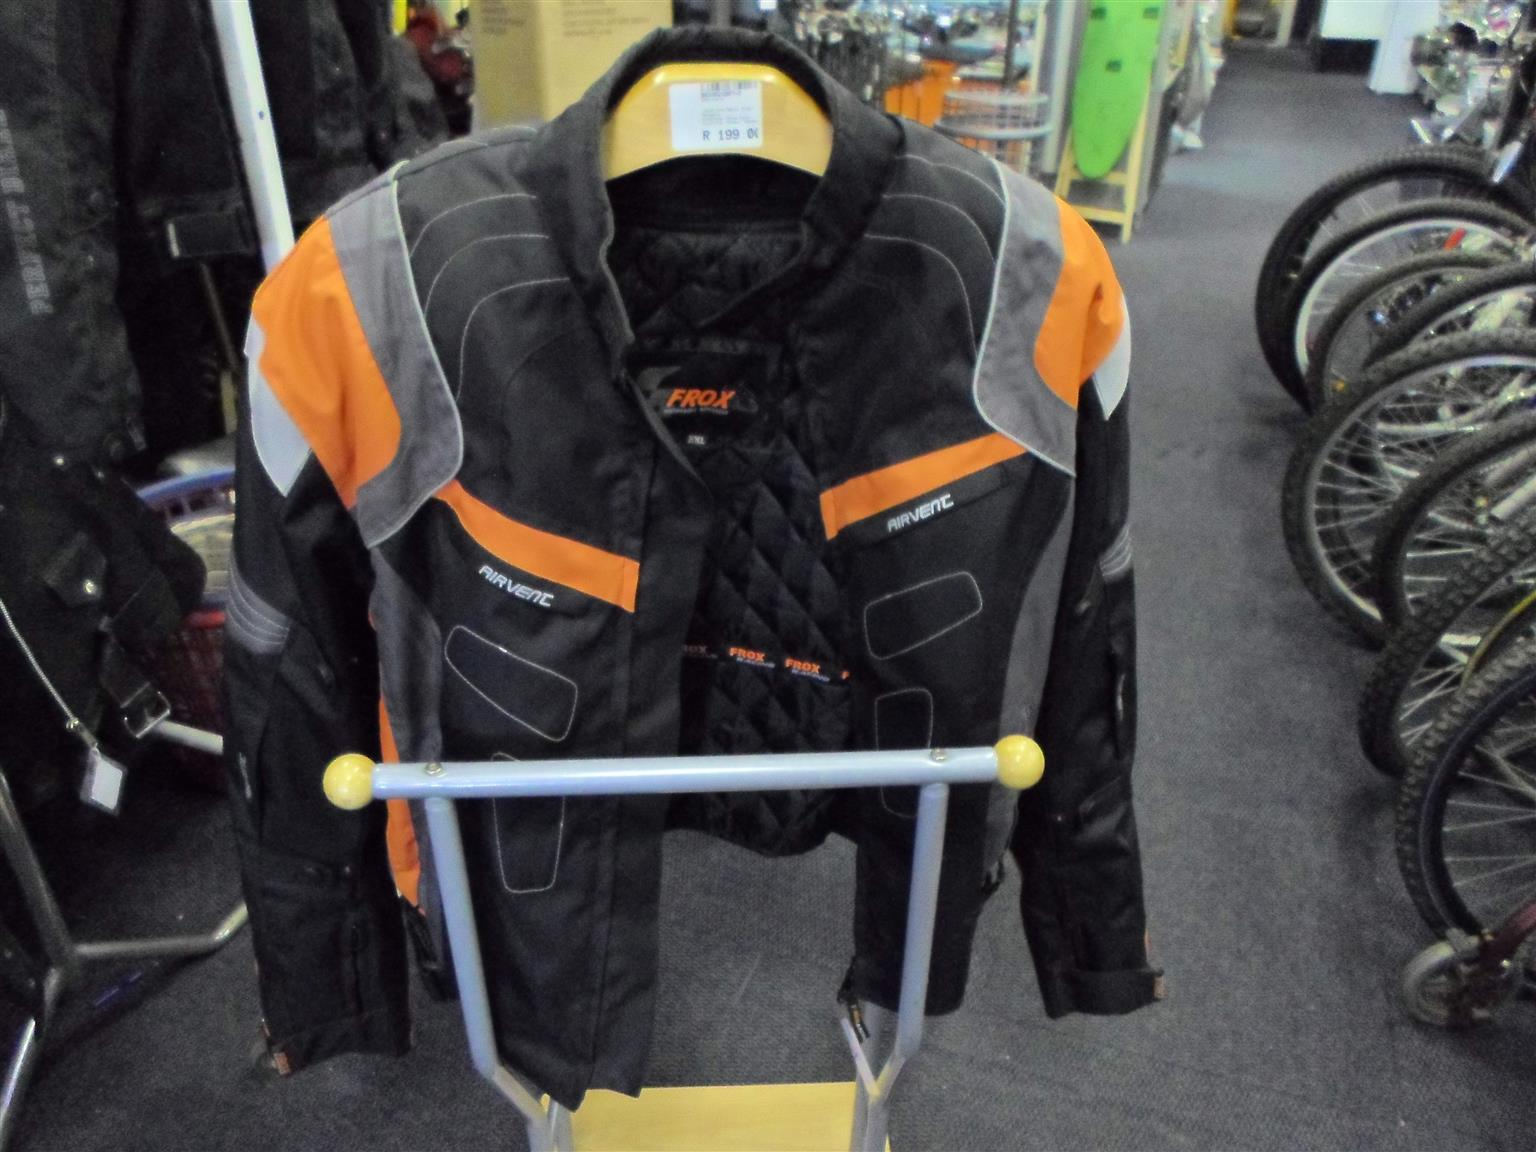 XXL Frox Motorcycle Jacket